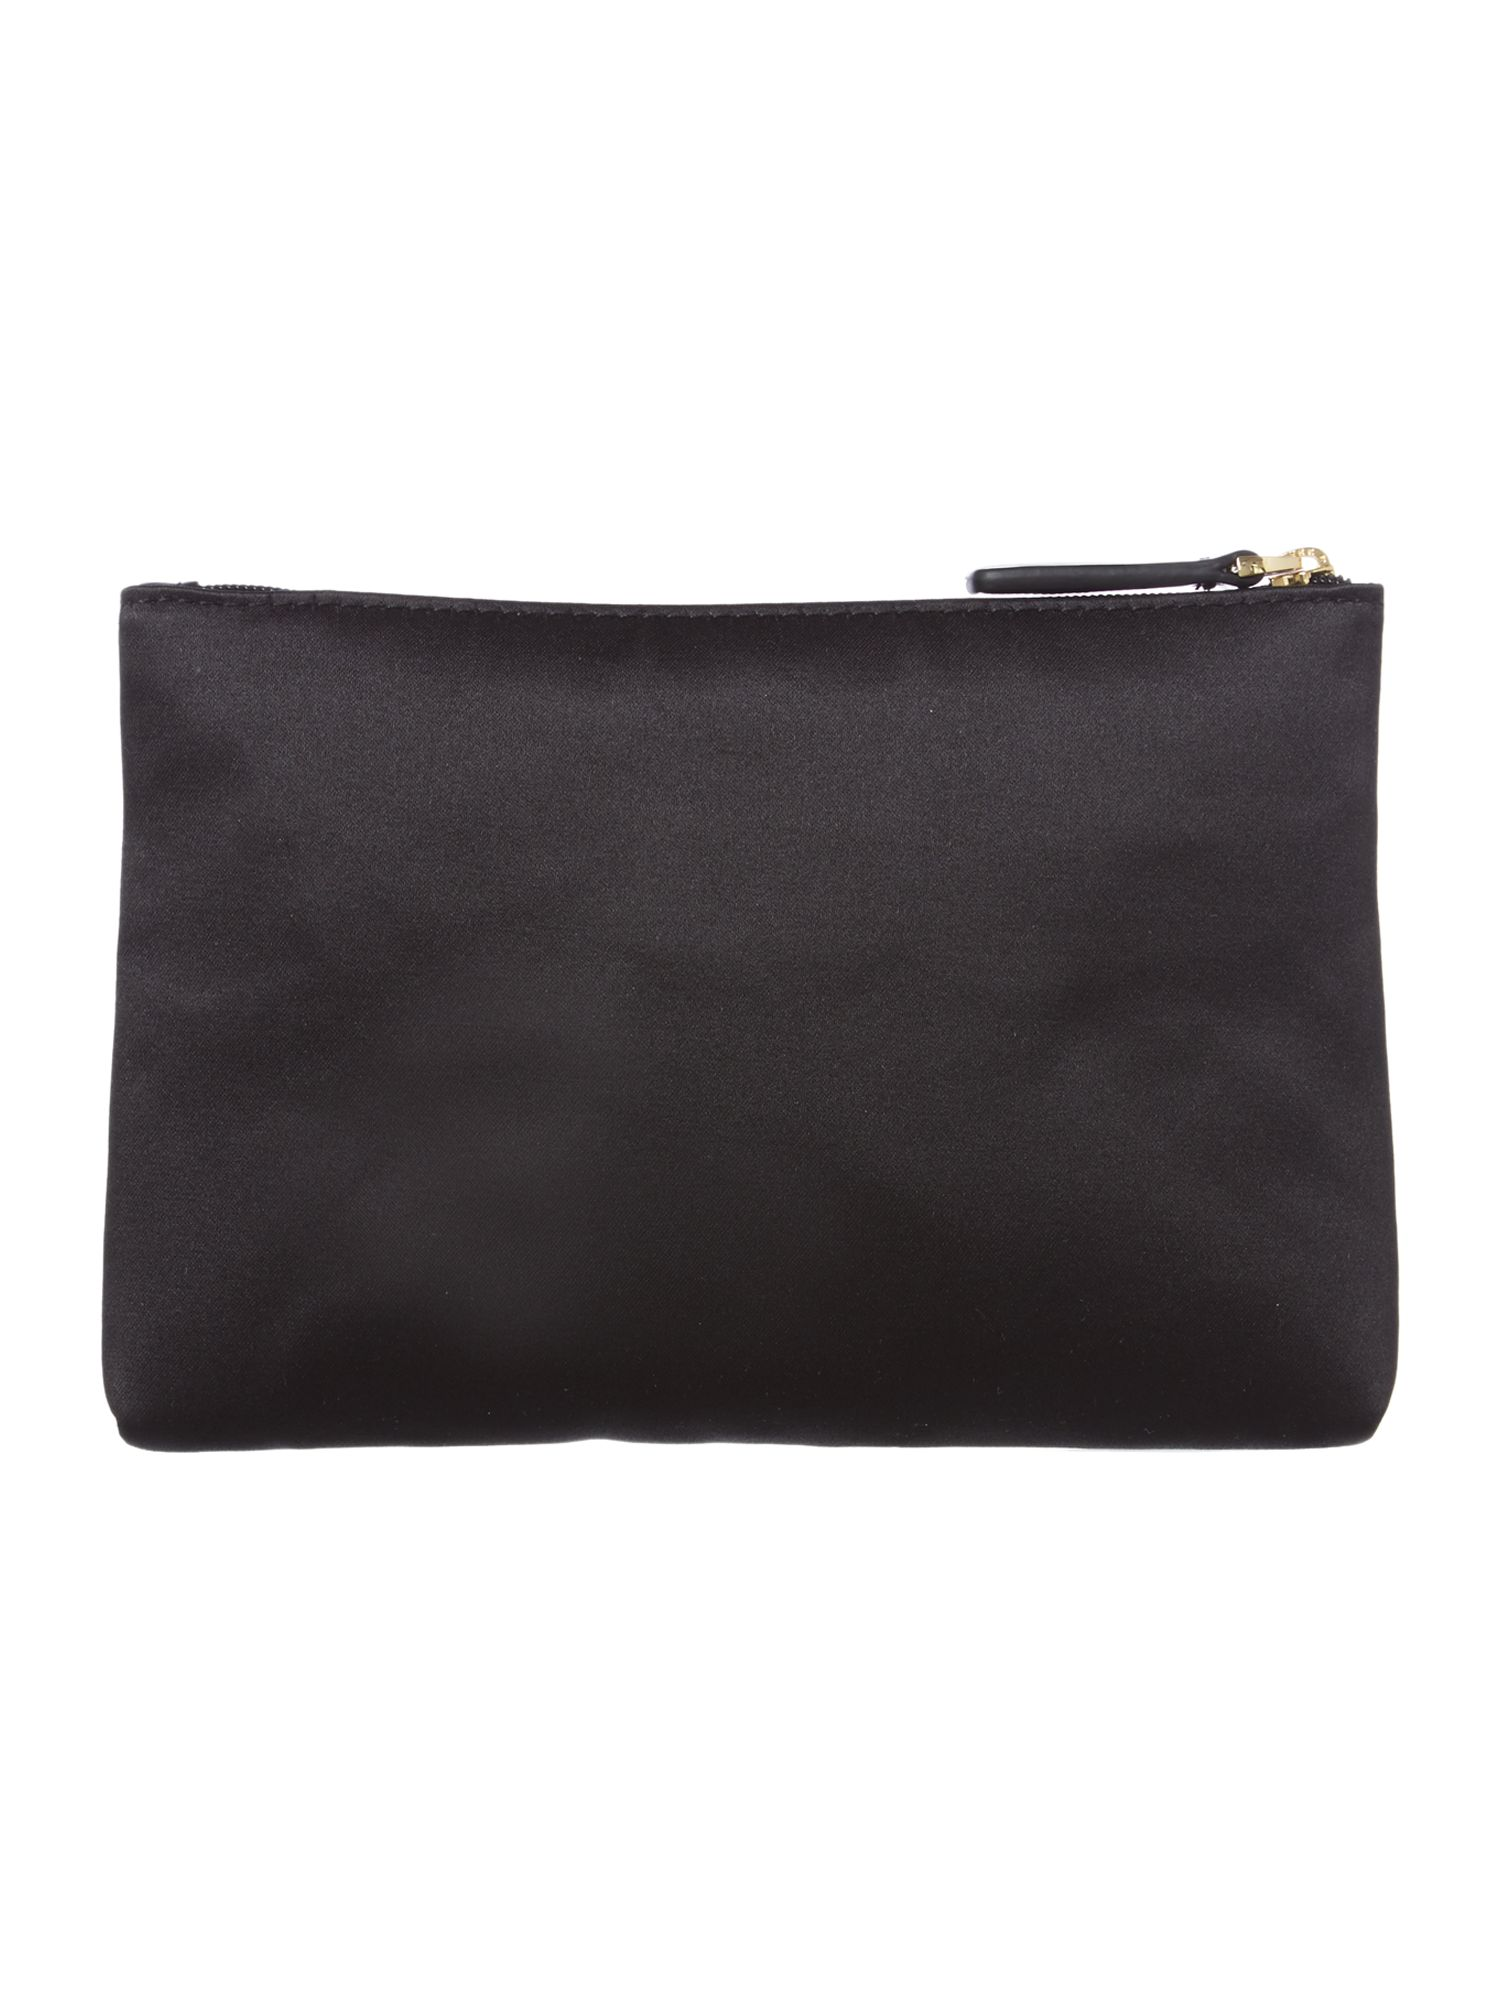 Black patent large frame purse